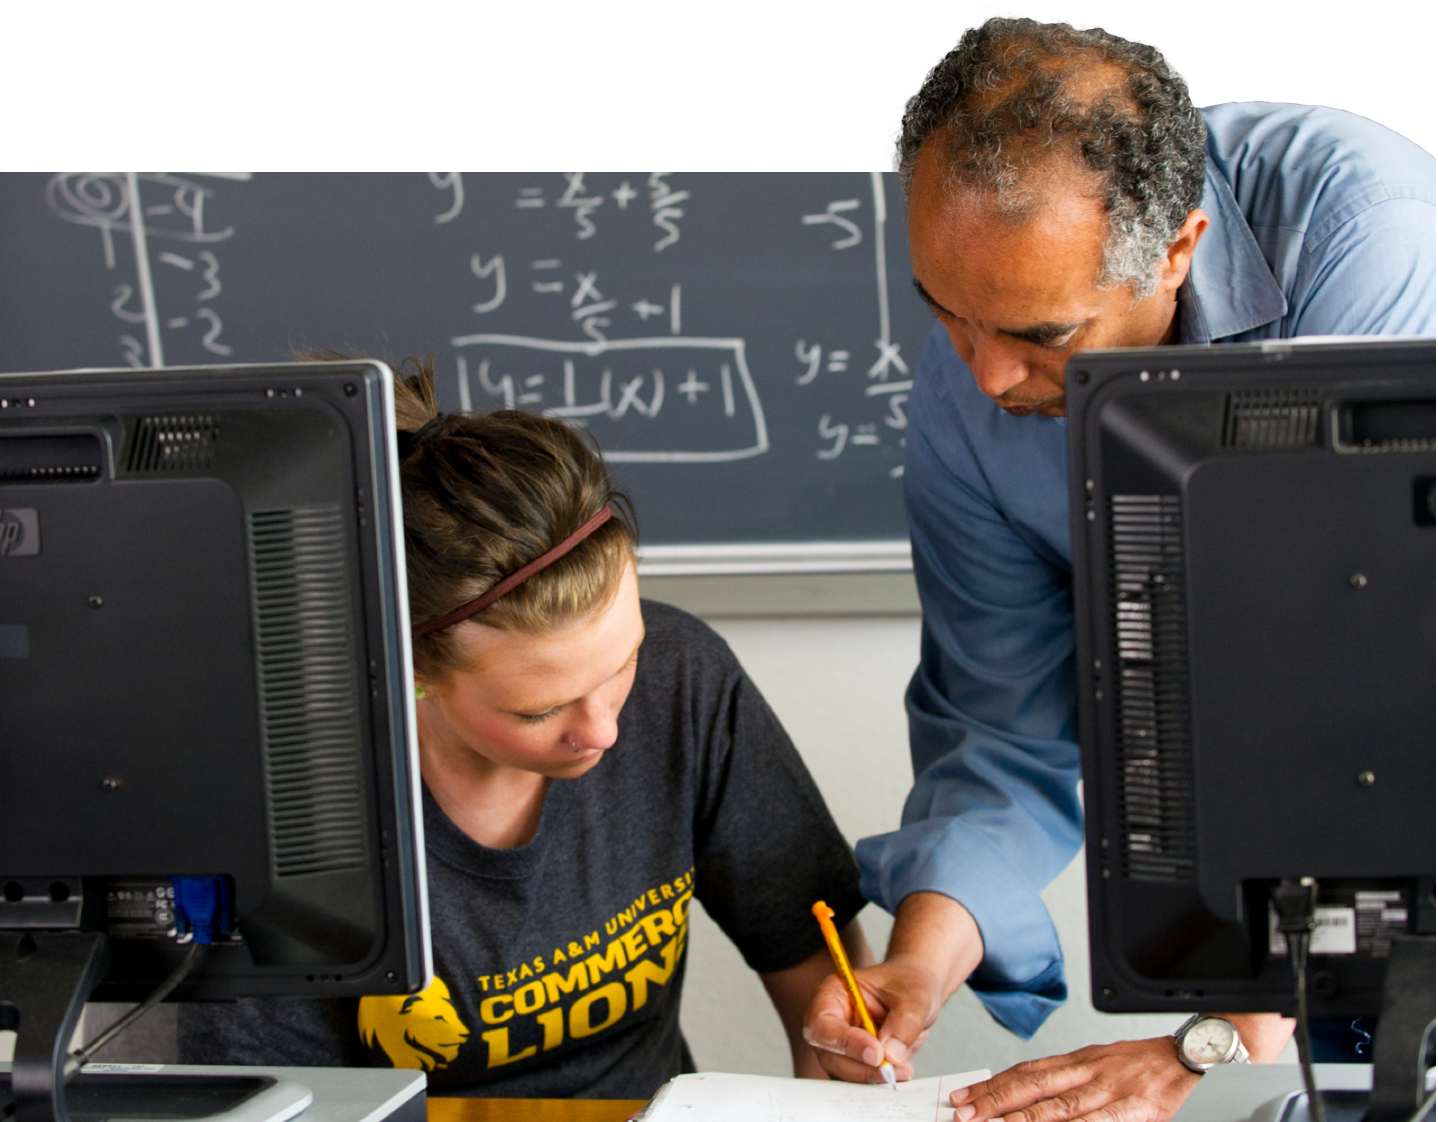 A math professor explaining to a student in the computer lab.